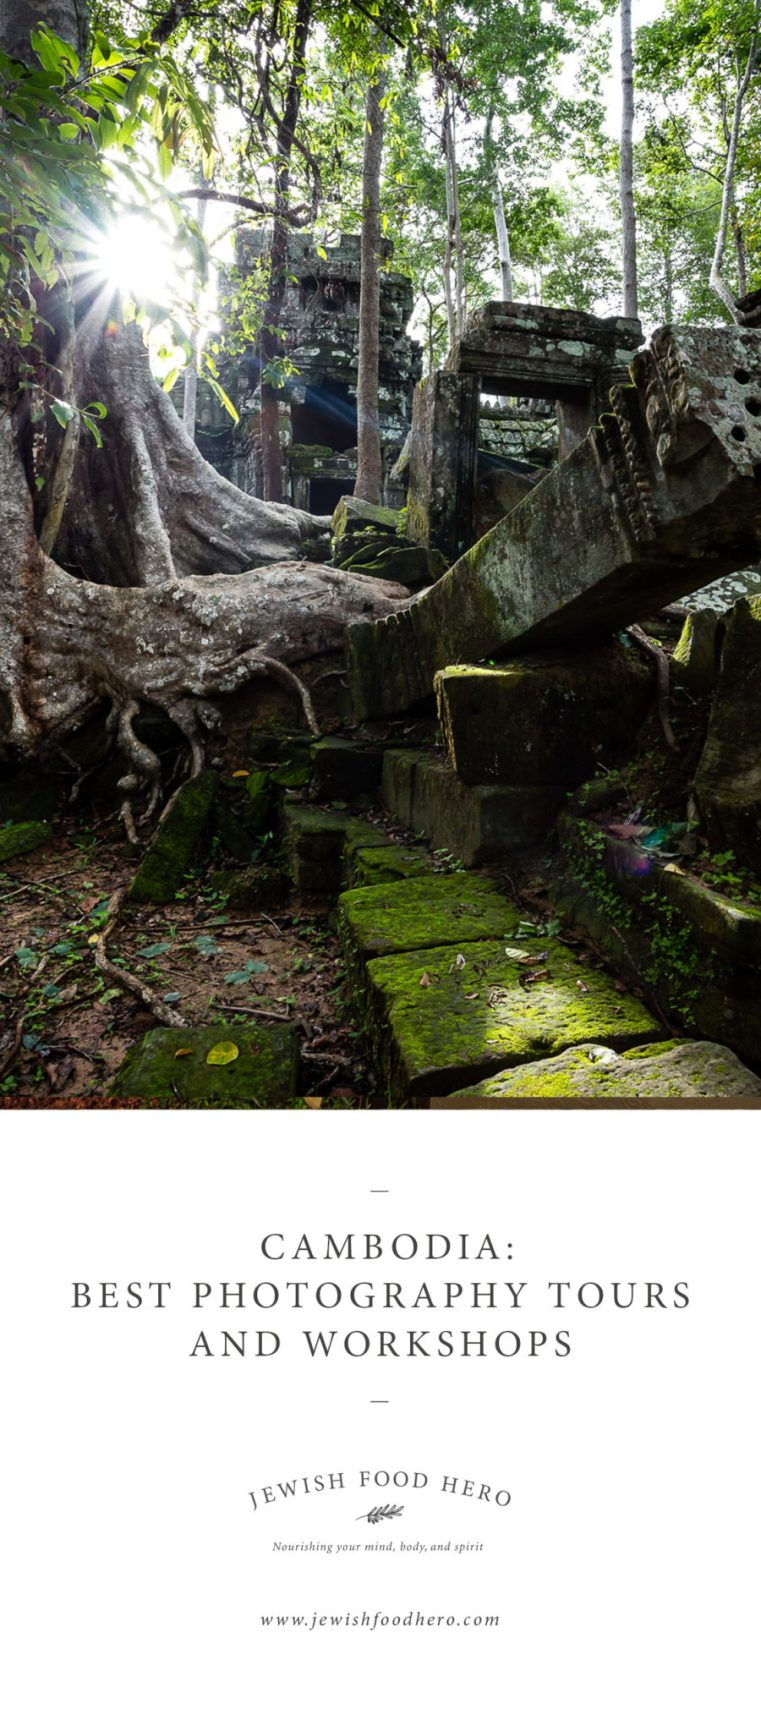 Best photography tours in Cambodia, must see sights in Cambodia, workshops for photography in Cambodia